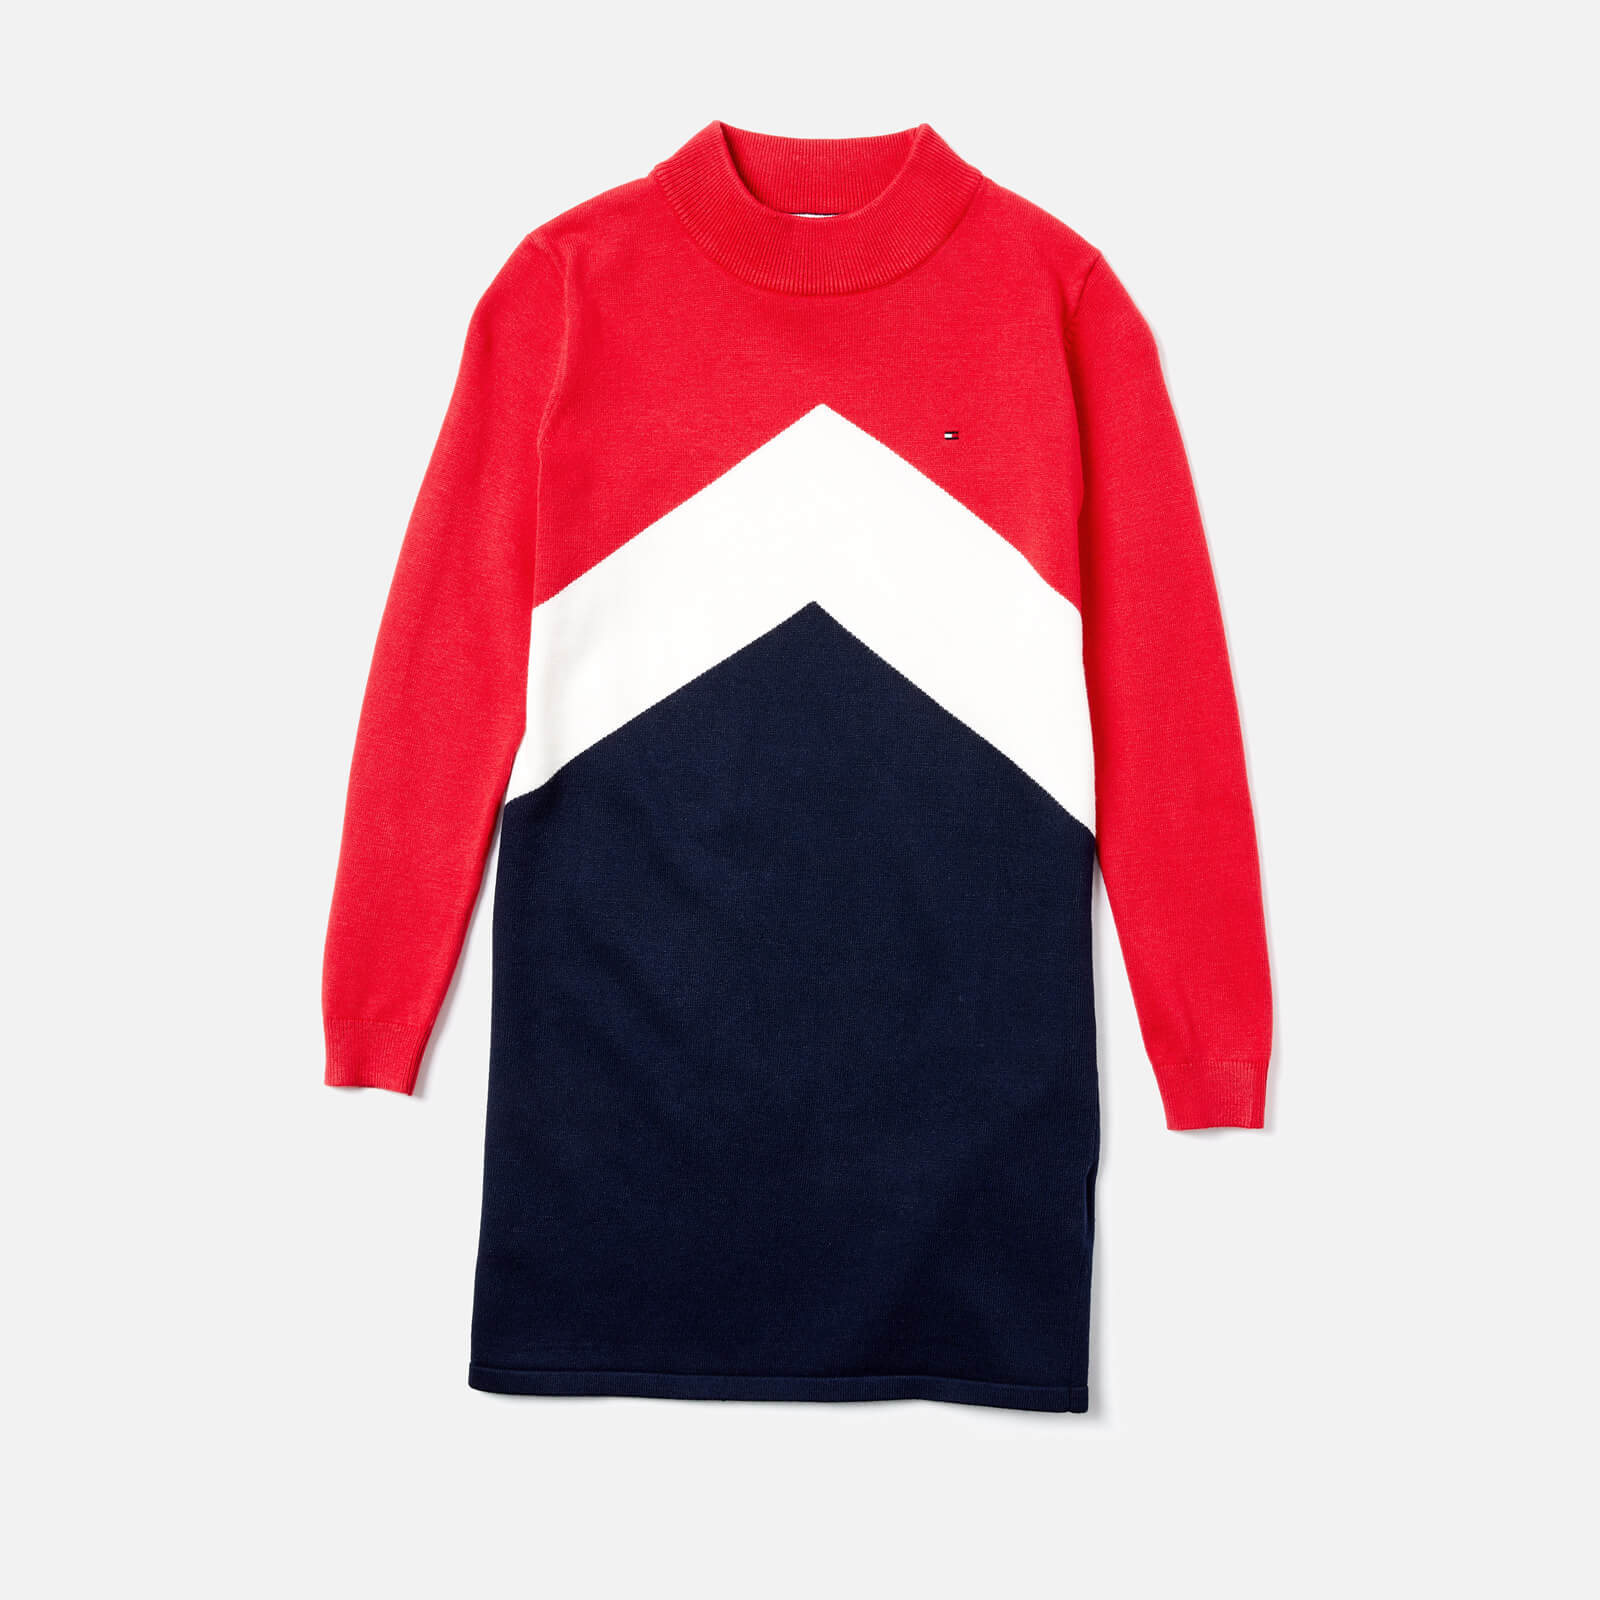 f0f4b08784a Tommy Hilfiger Girls  Chevron Block Sweater Dress - True Red Multi Clothing